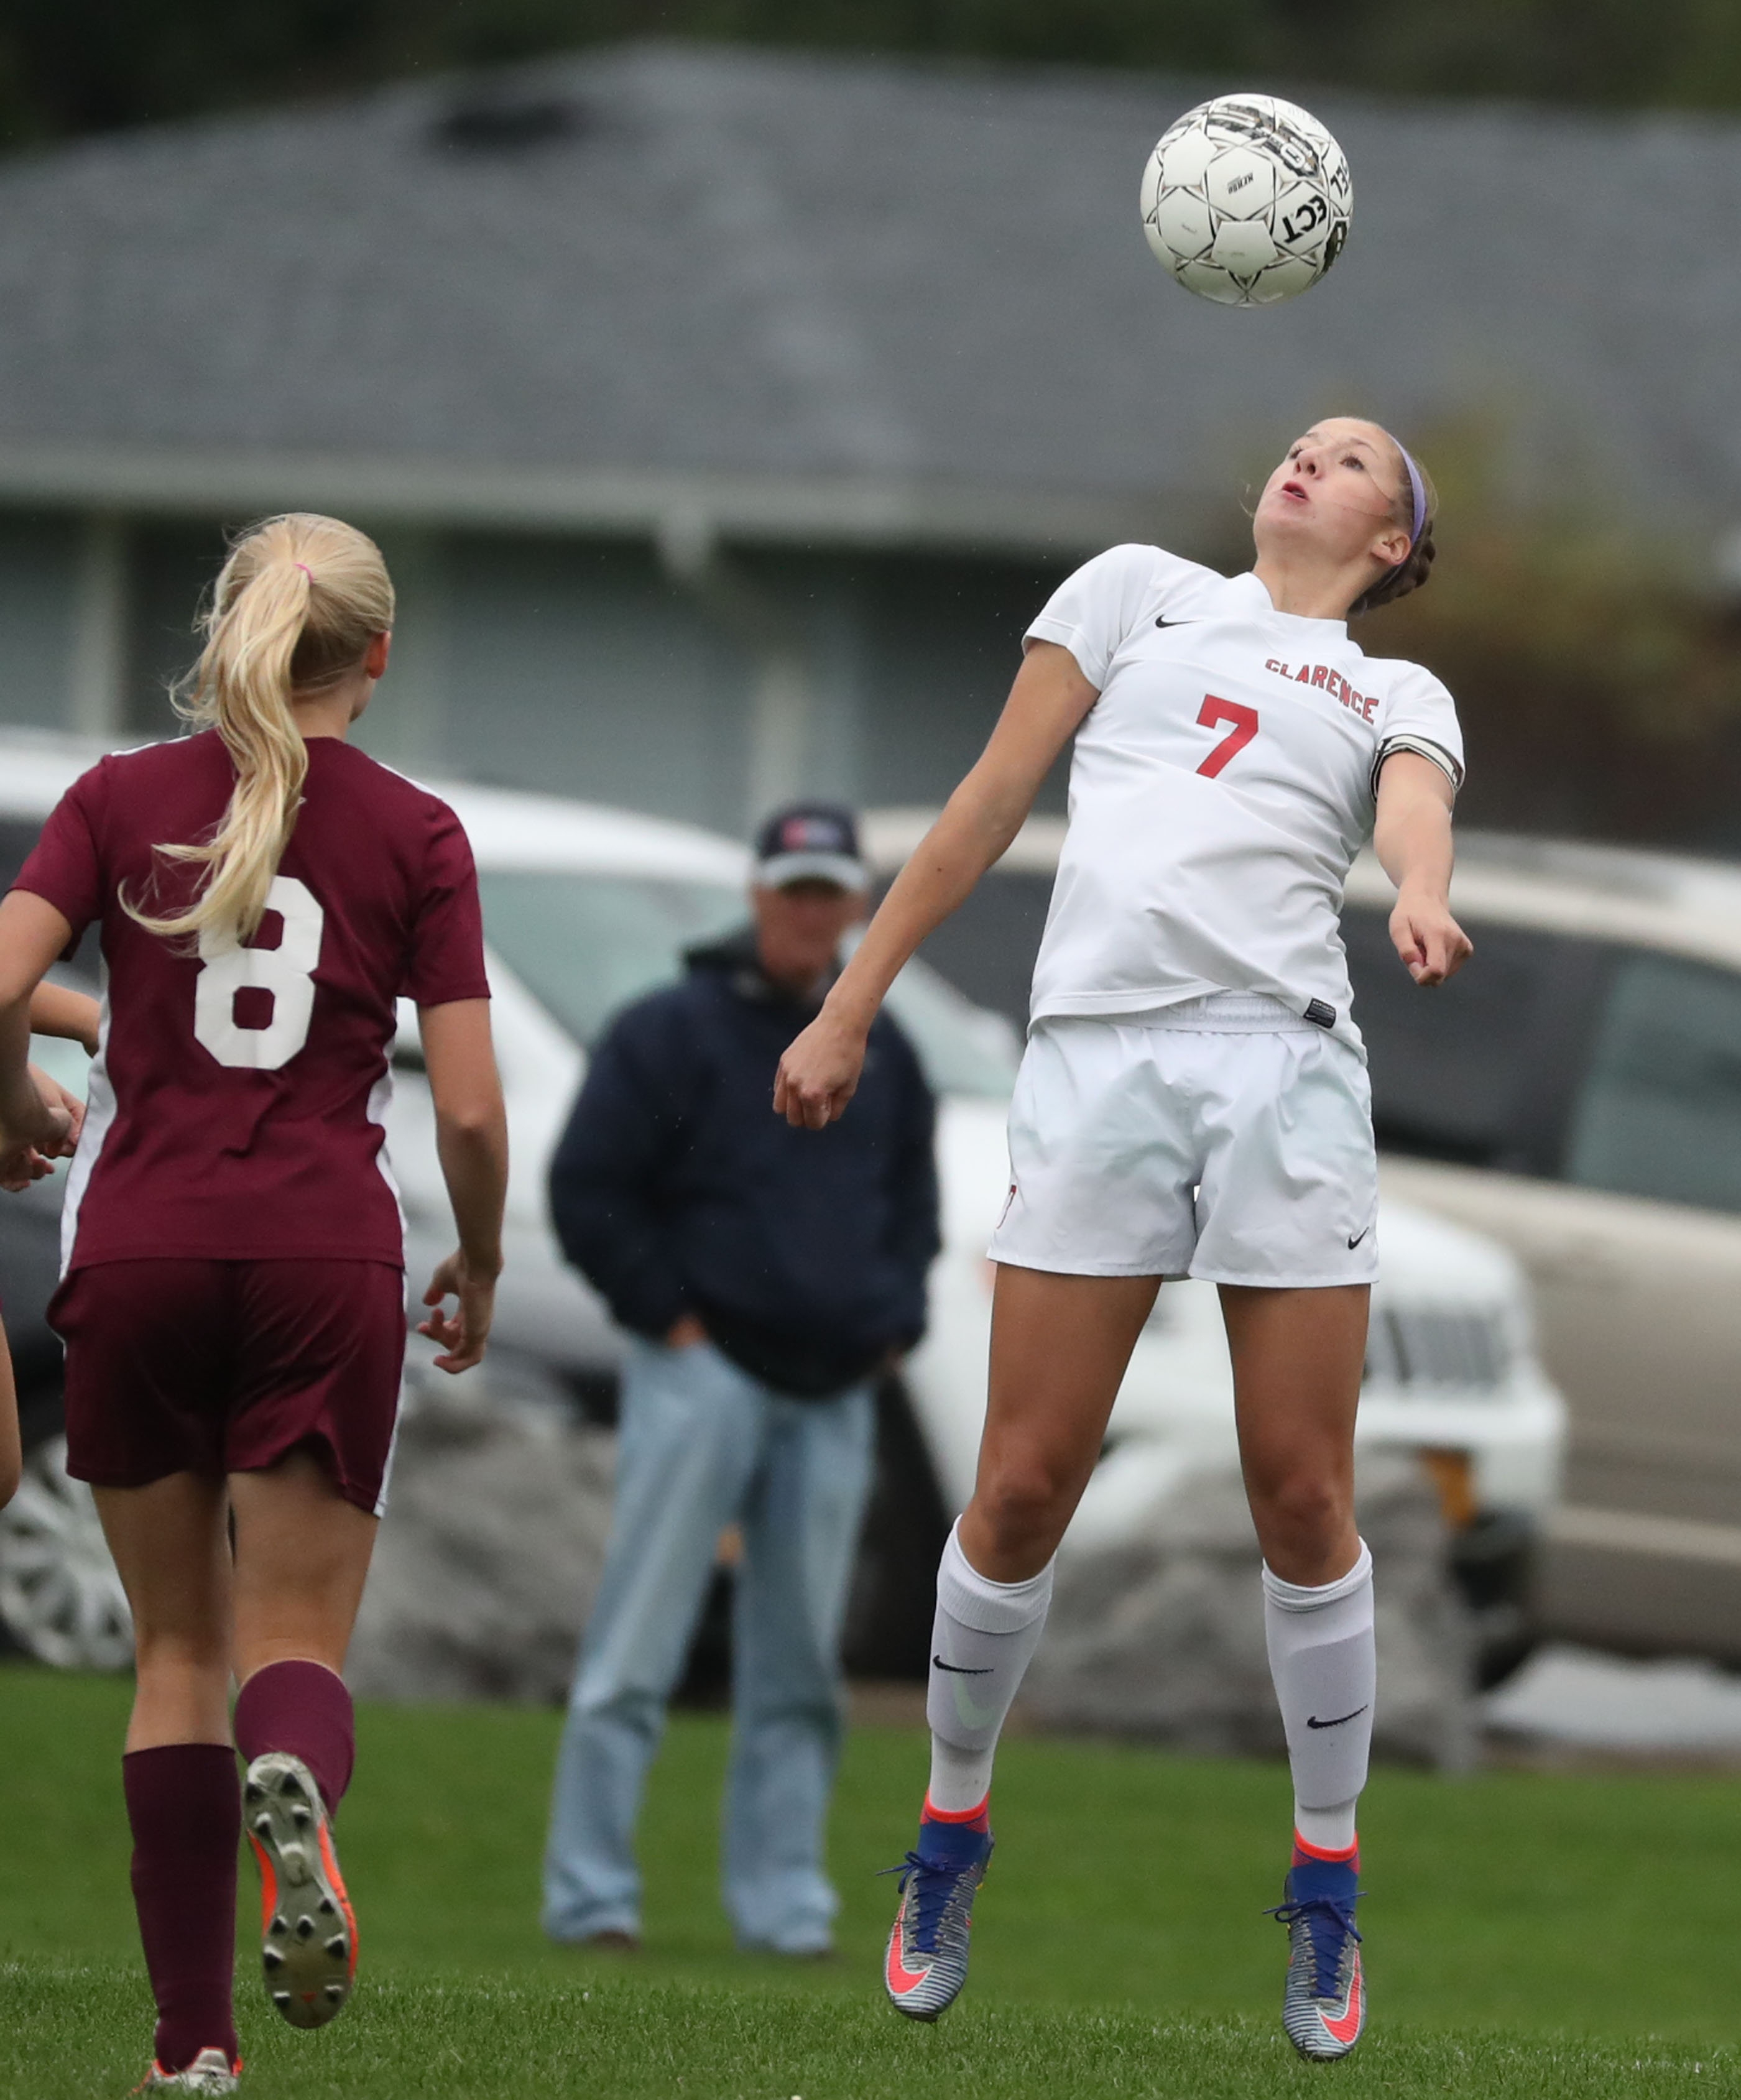 Lauren Cullinen heads the ball away from Orchard Park's Jenna DeHaven during Clarence's 8-0 win in an ECIC I clash Thursday.